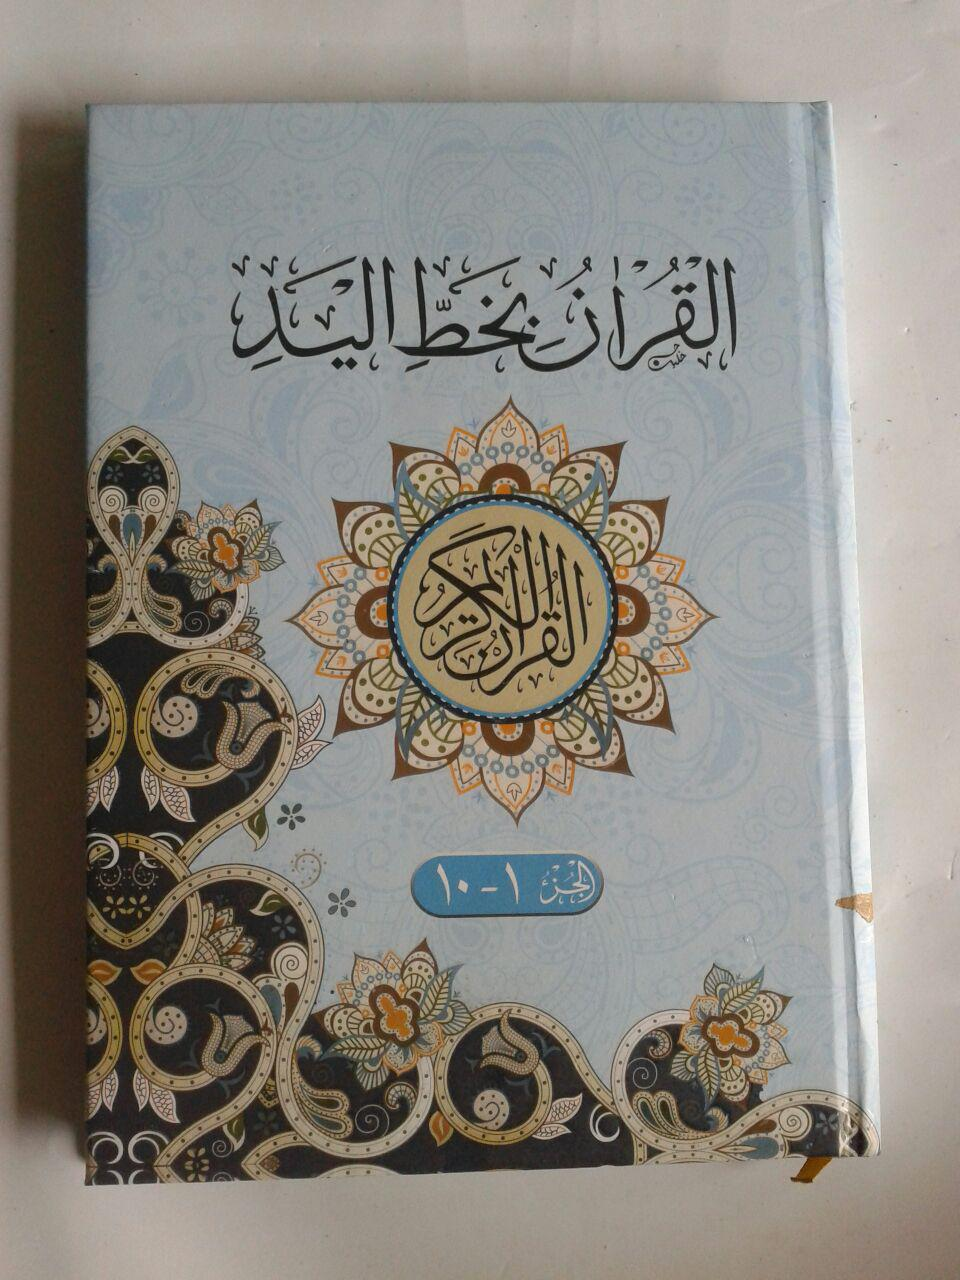 Al-Qur'an Tulis Metode Follow The Line 1 Set 3 Jilid cover 2